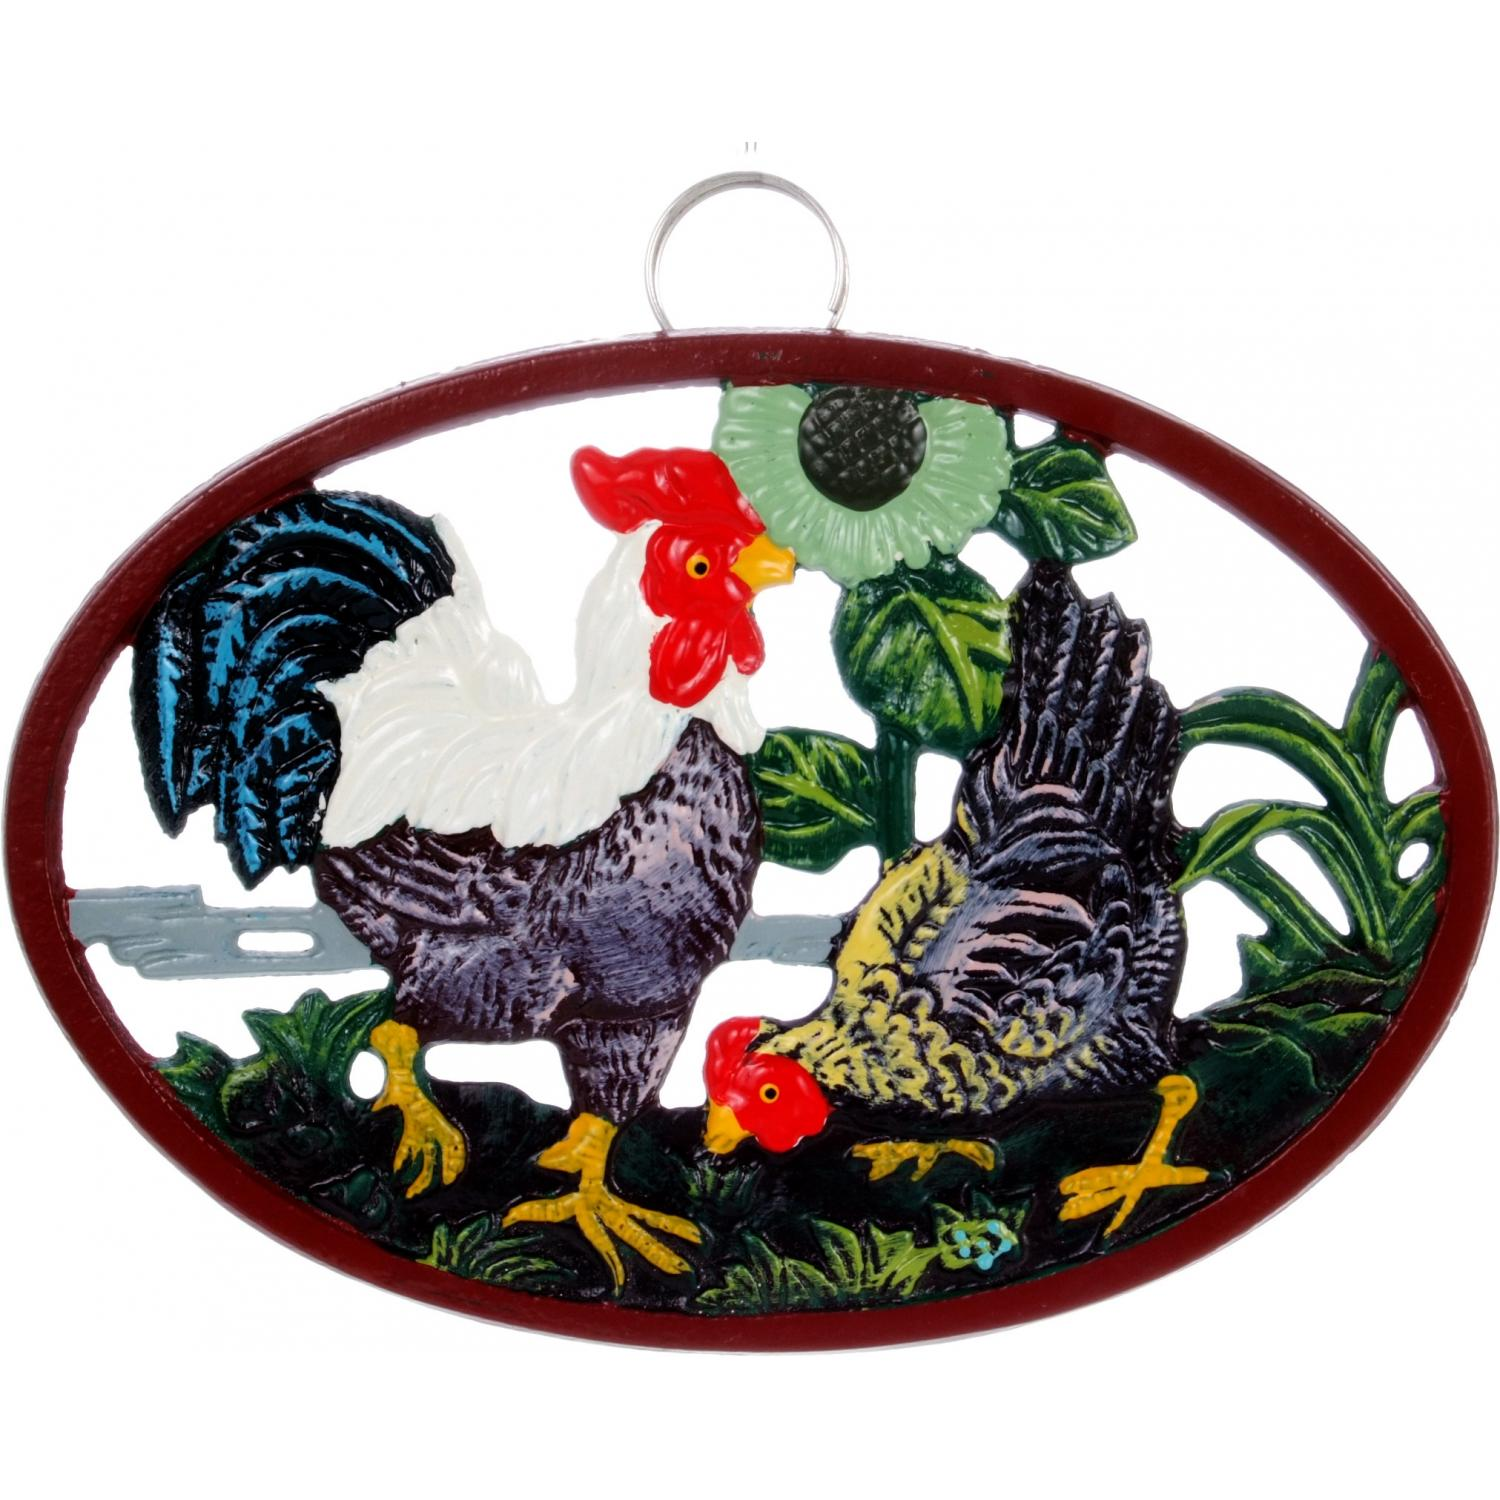 Cajun Cookware Trivets Hen And Rooster Cast Iron Trivet